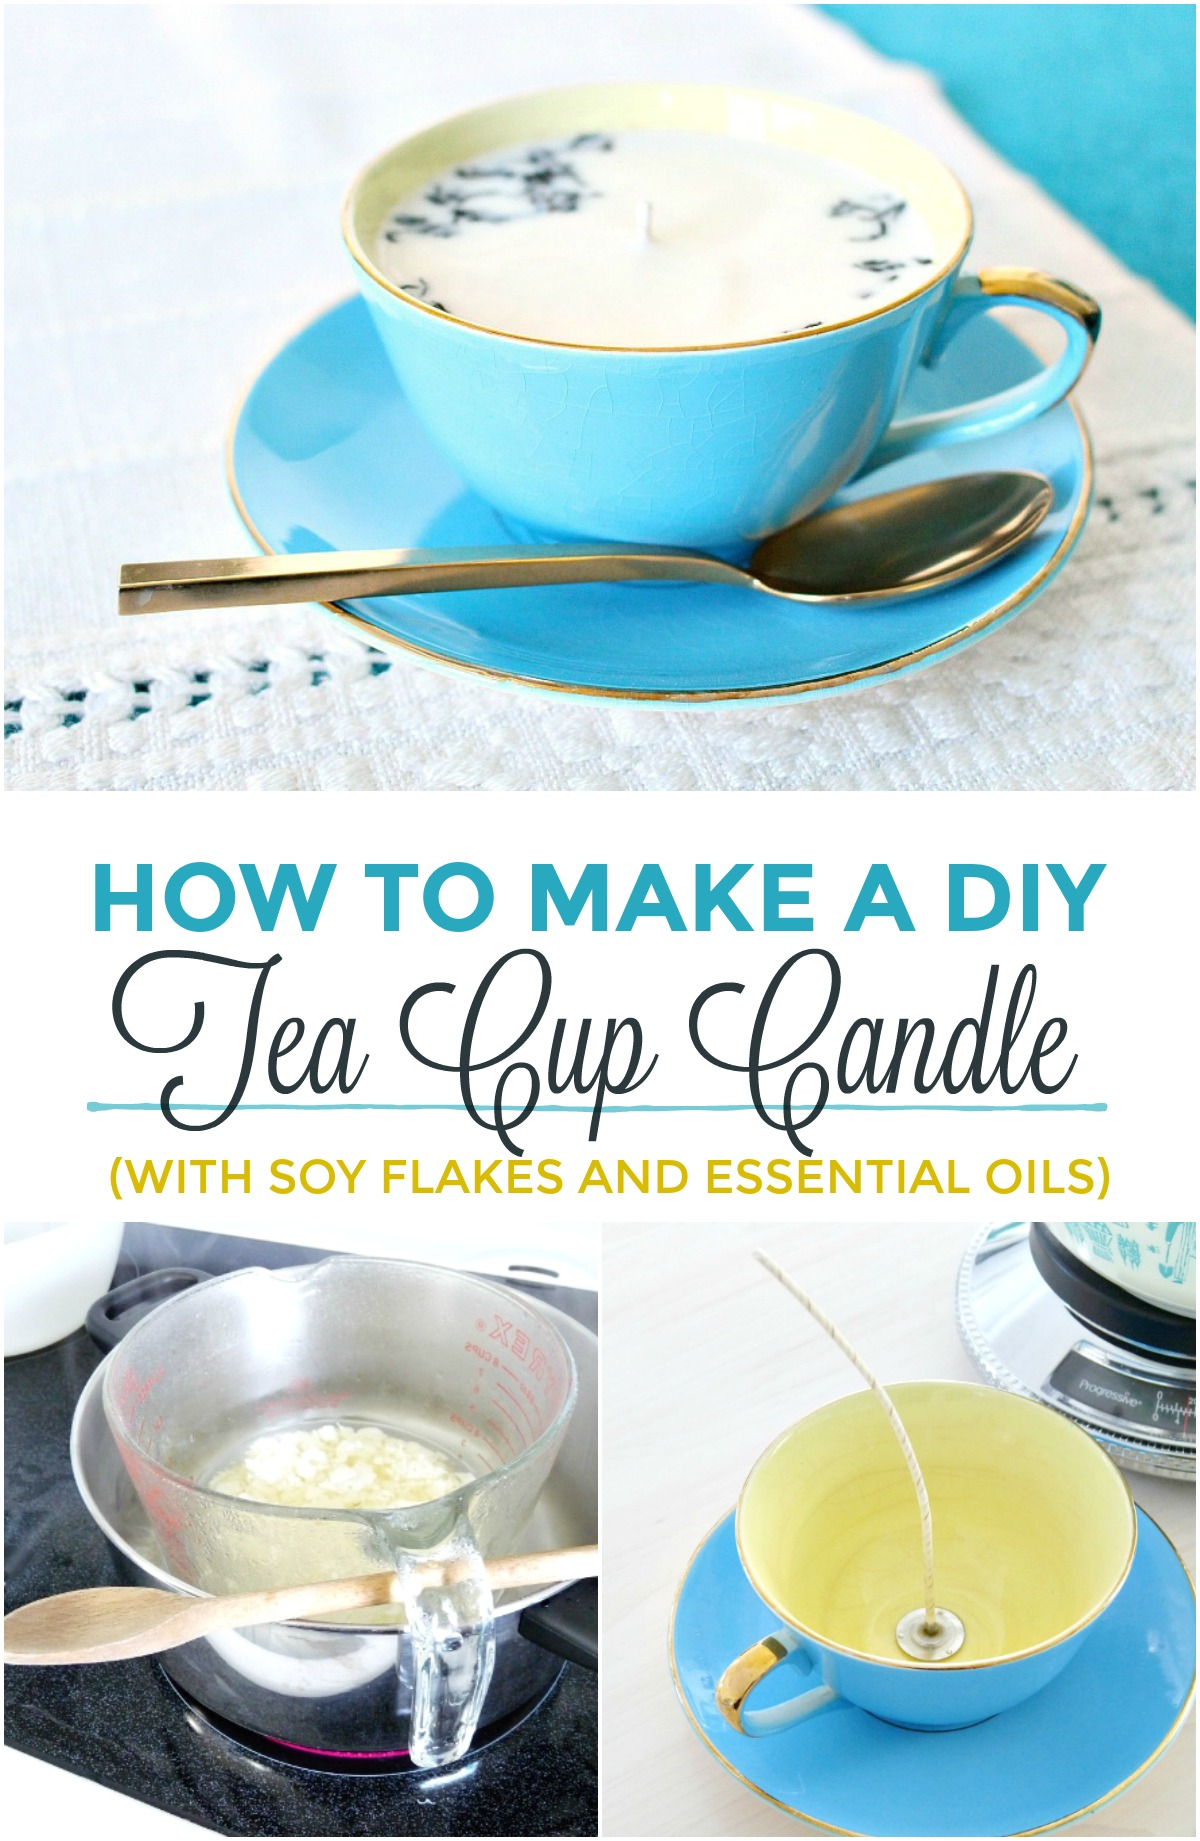 How to Make a DIY Tea Cup Candle with Soy Flakes and Essential Oil. DIY Earl Grey Tea Cup Candle in Upcycled Tea Cup. #diycandle #teacupcandle #upcycledcrafts